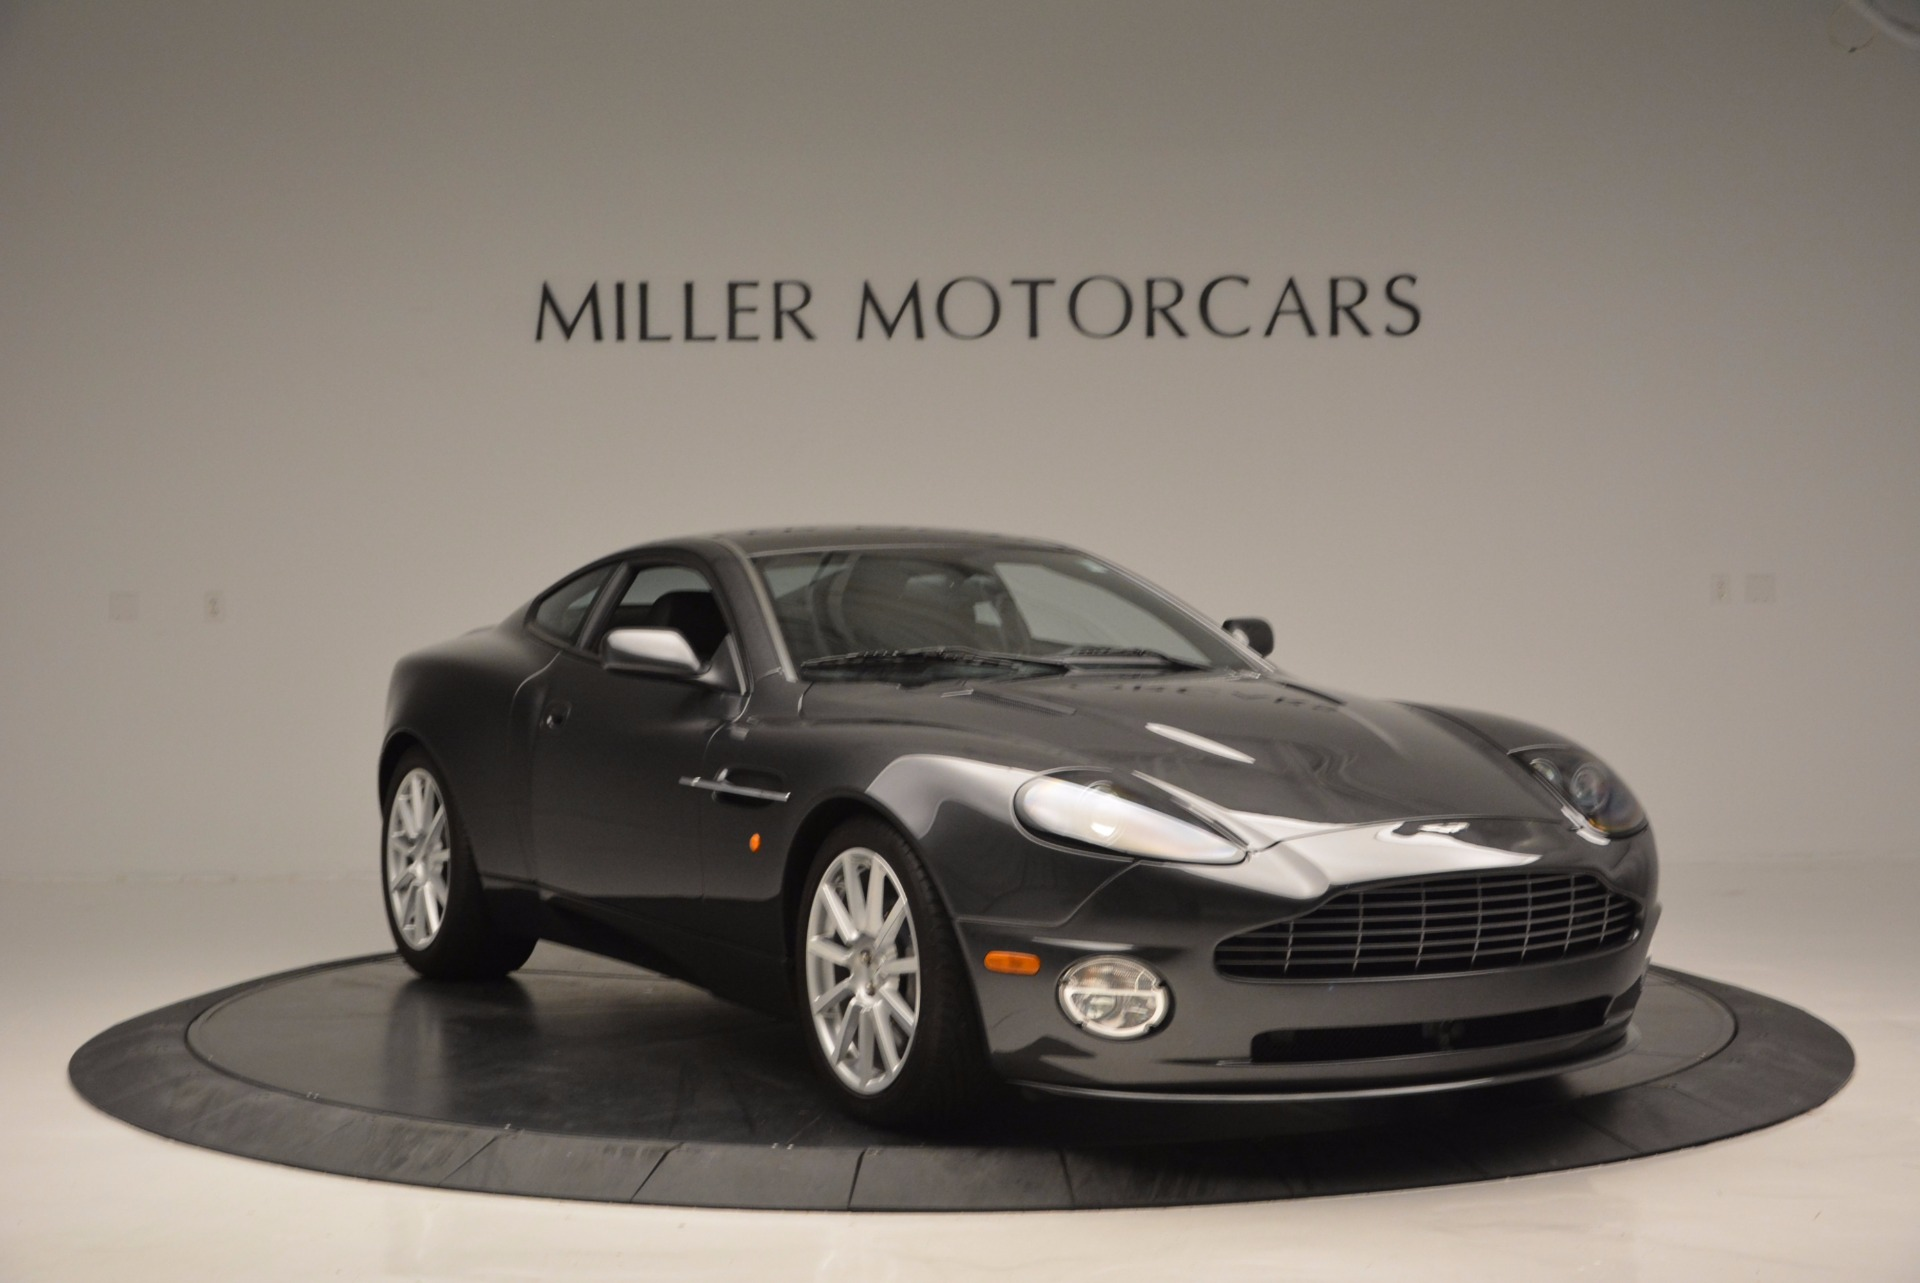 Used 2005 Aston Martin V12 Vanquish S For Sale In Greenwich, CT. Alfa Romeo of Greenwich, 7097 645_p11